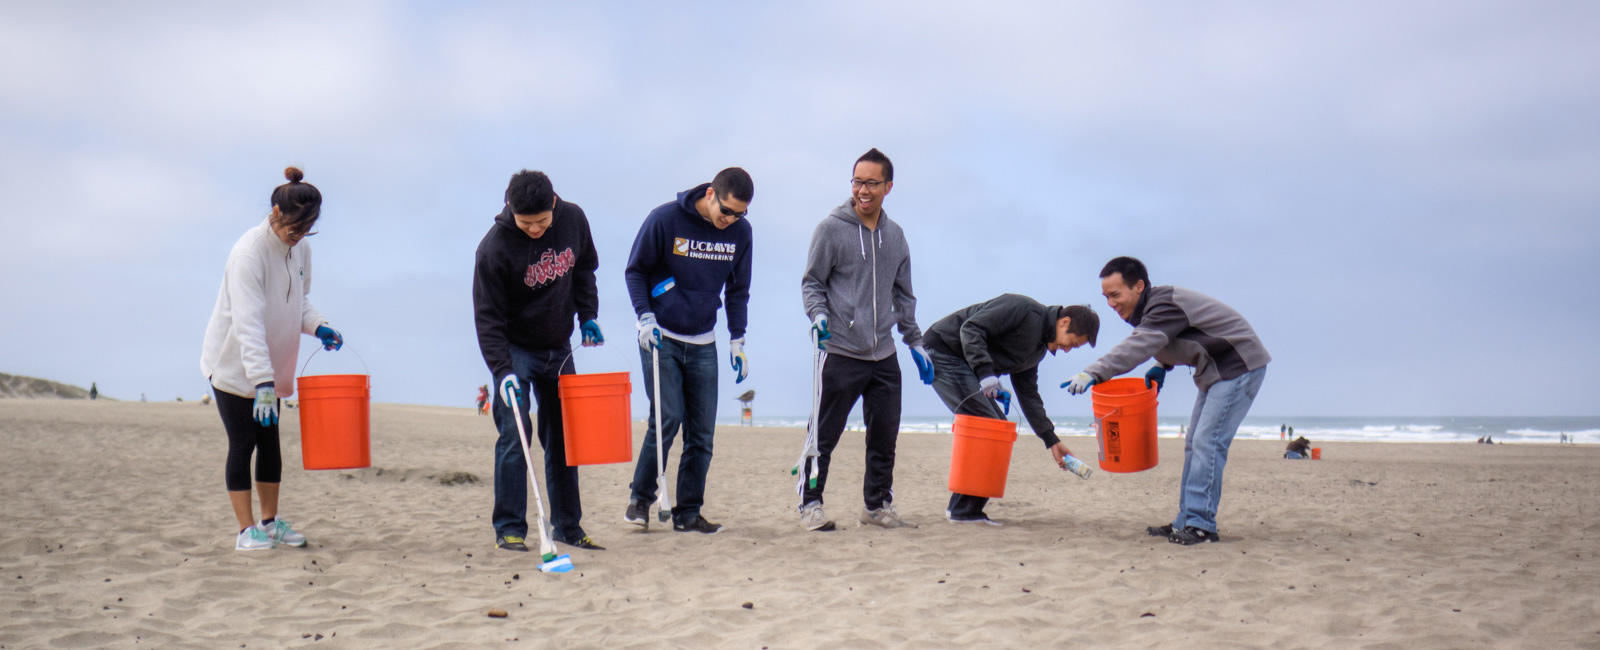 Volunteers at Coastal Clean-up Day